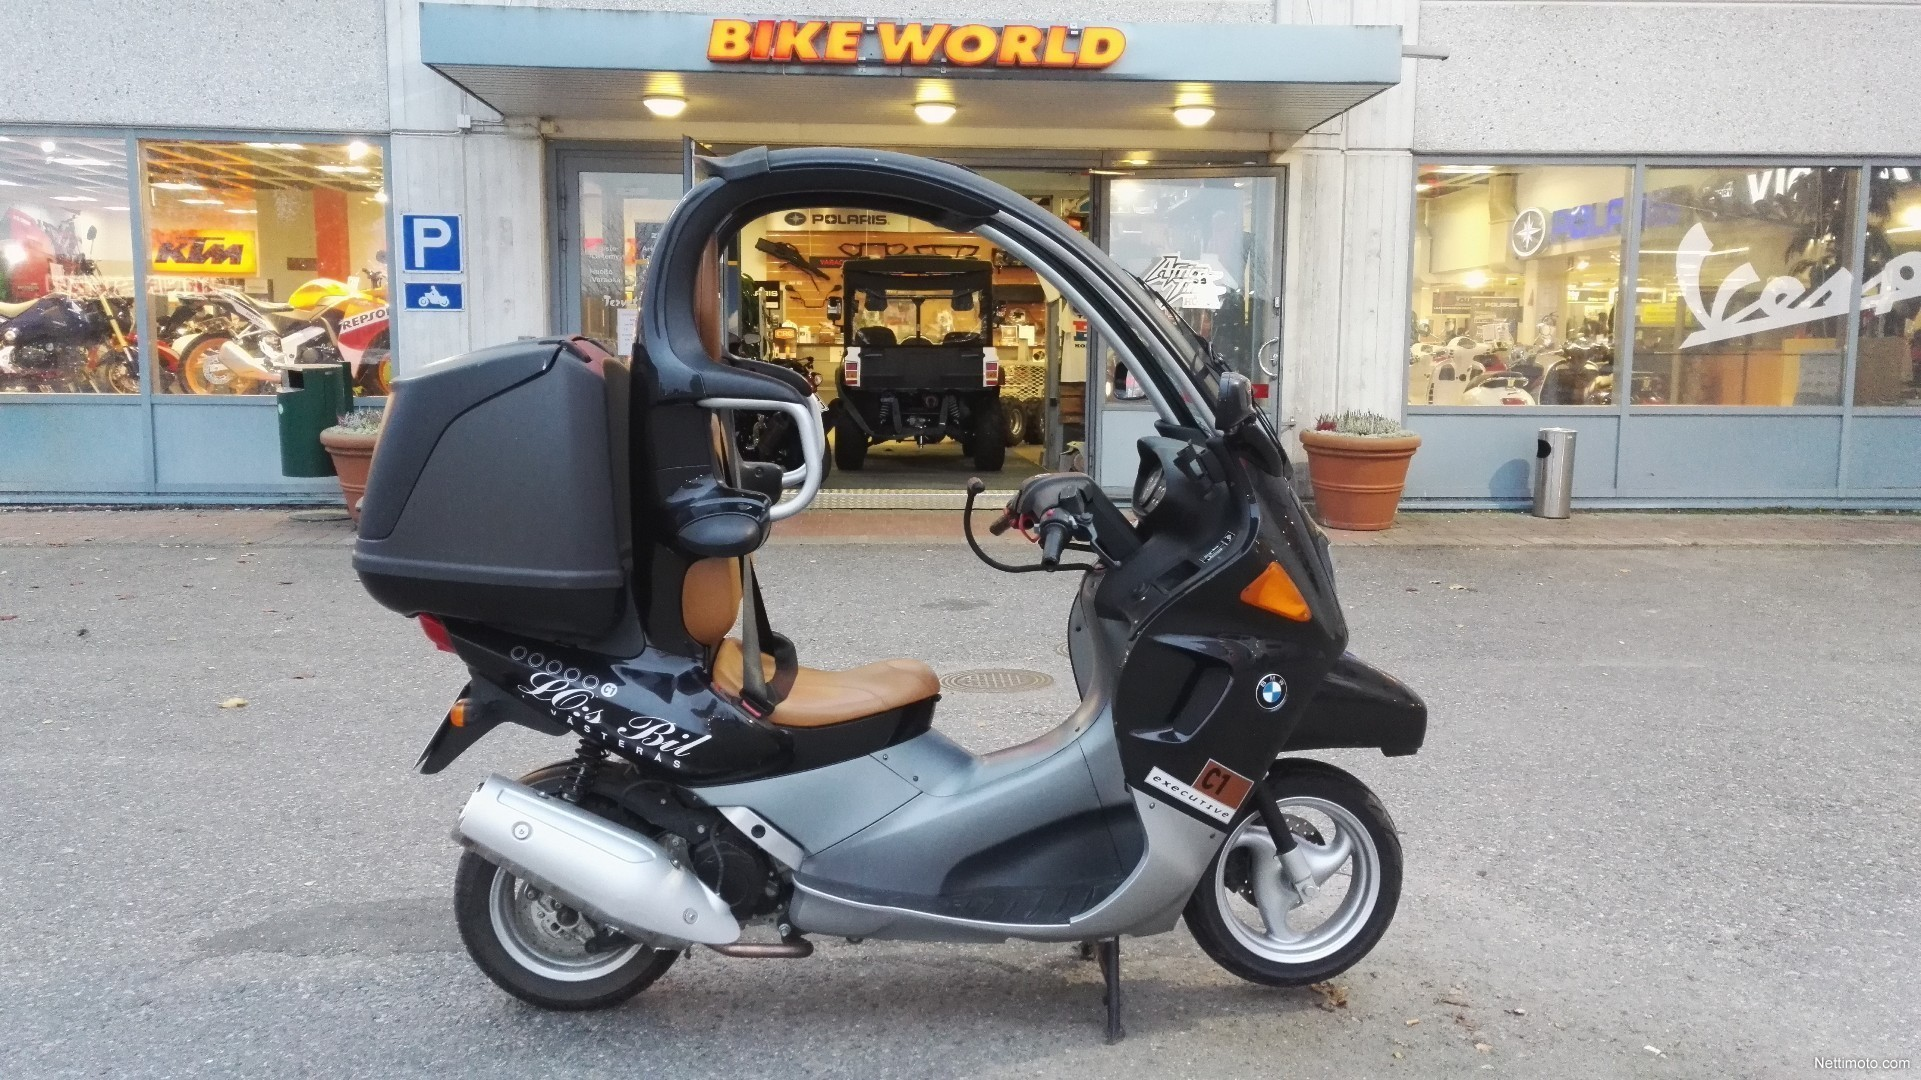 bmw c1 125 cm 2001 vantaa scooter nettimoto. Black Bedroom Furniture Sets. Home Design Ideas